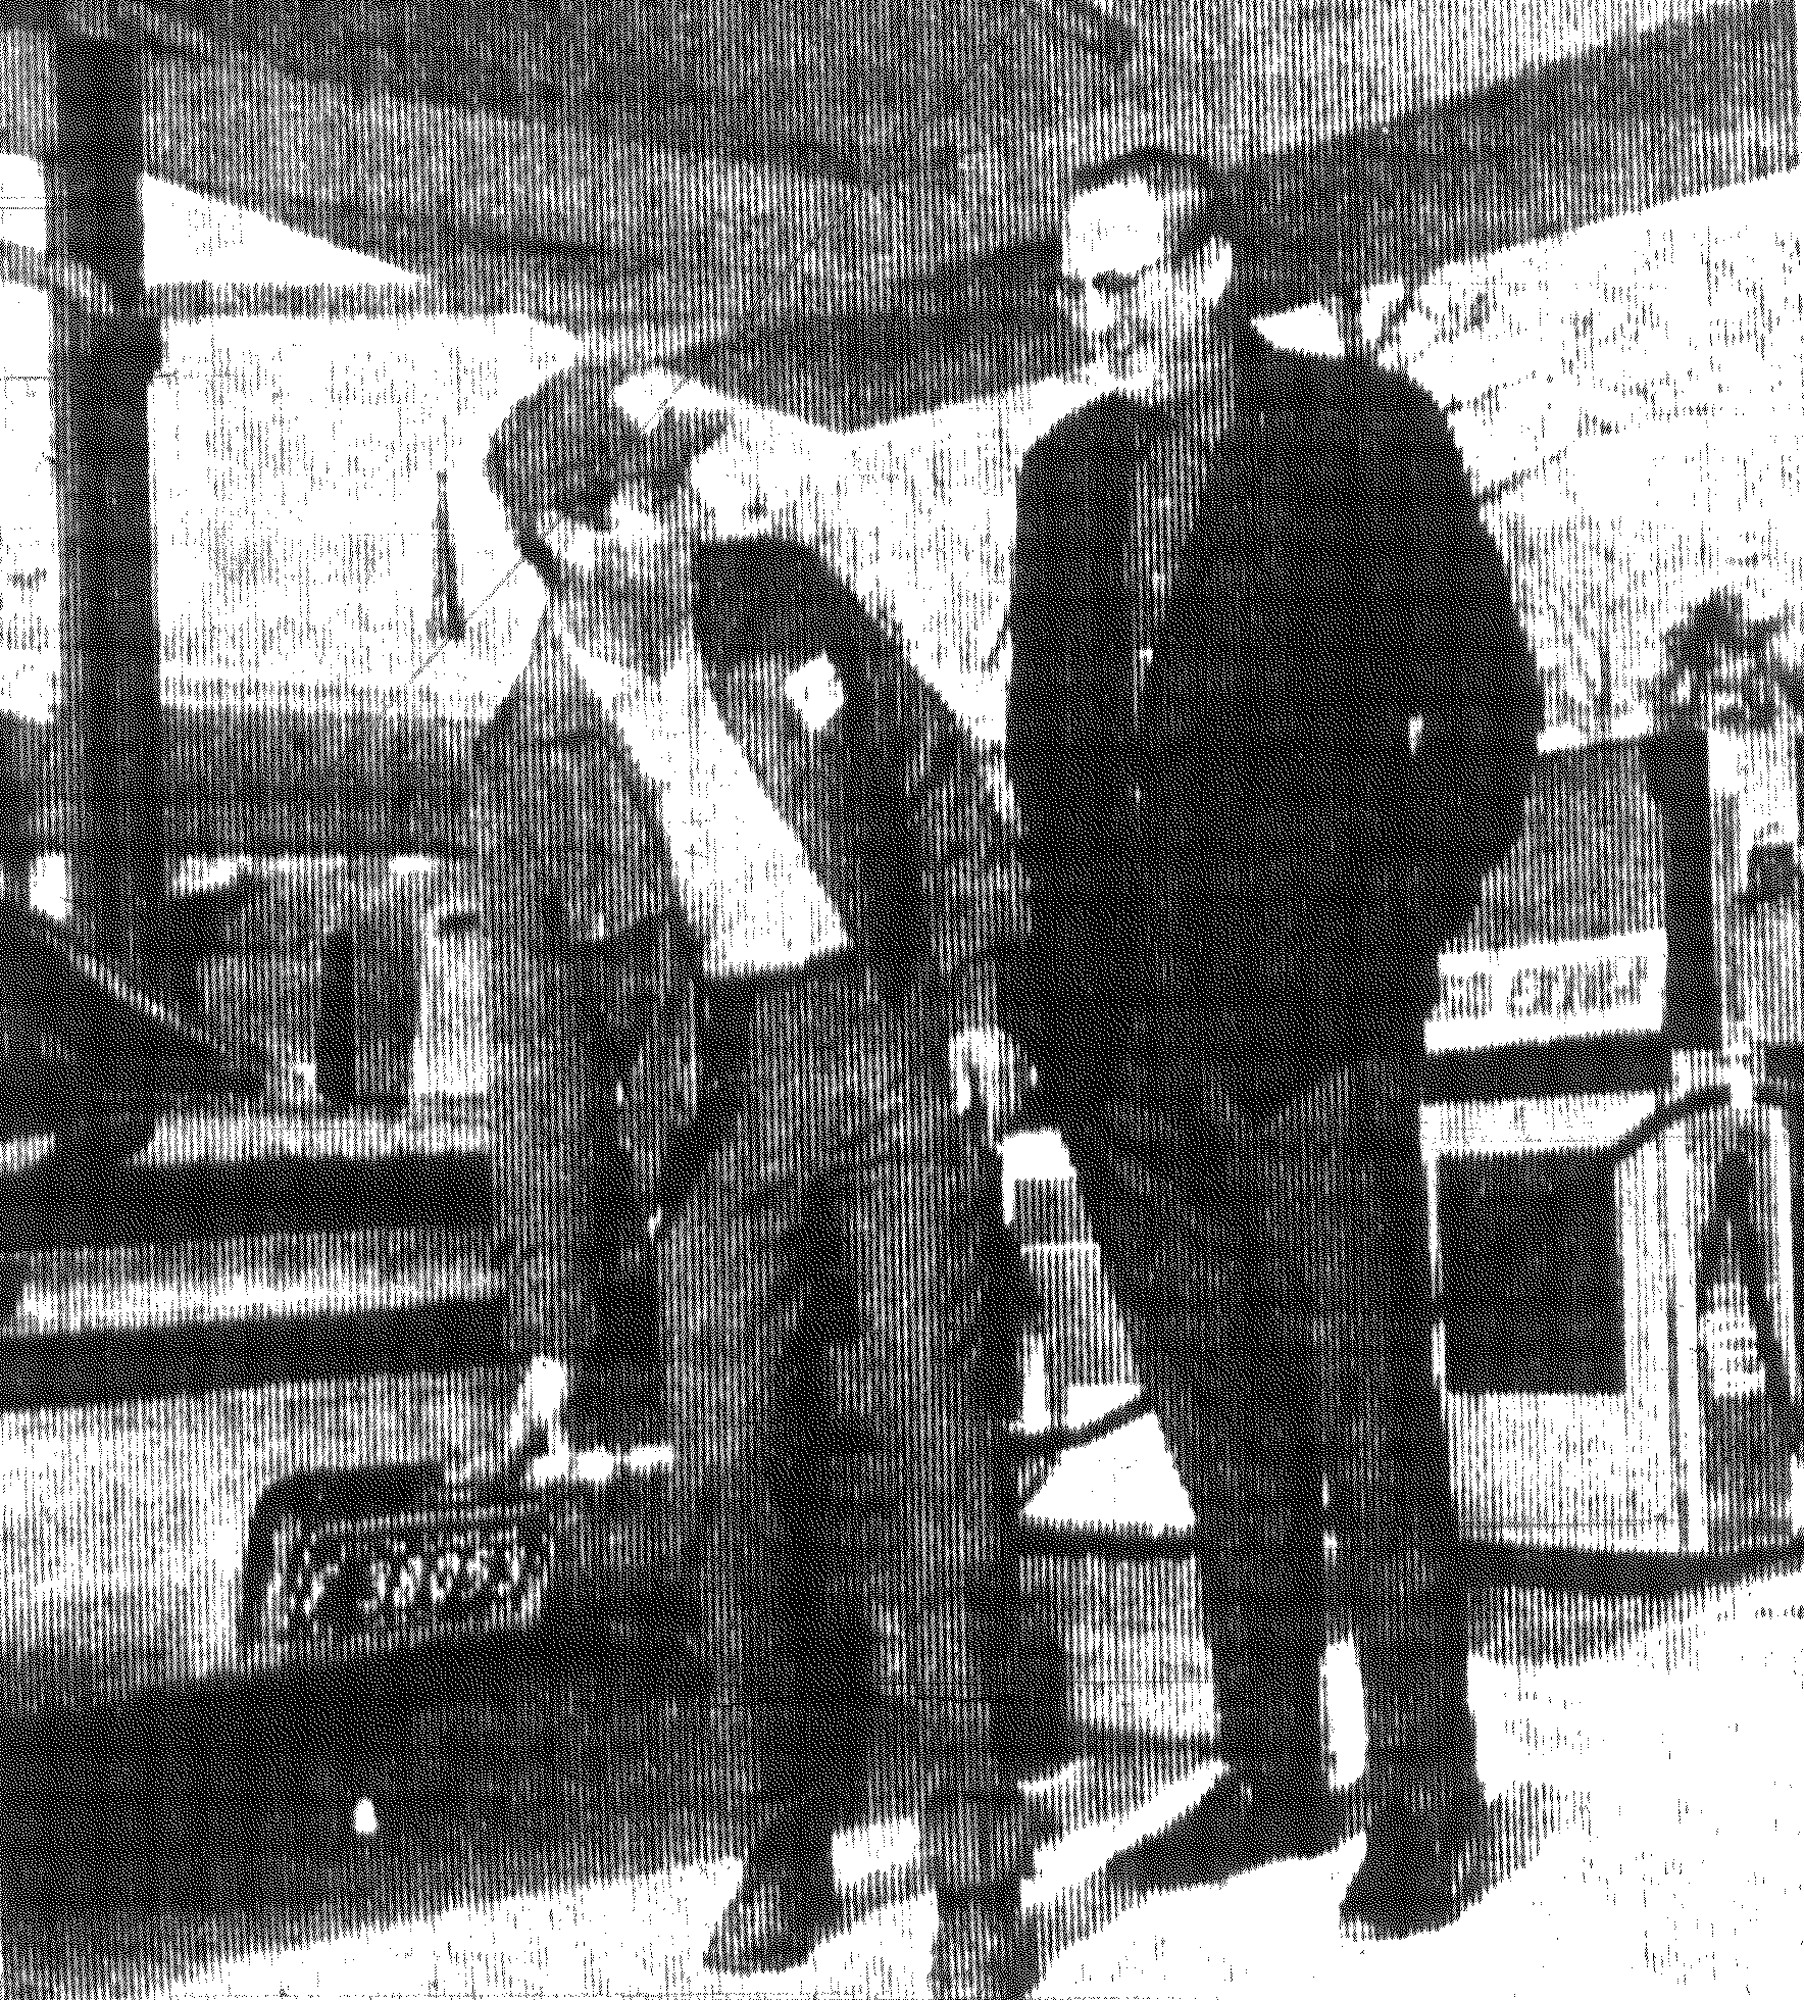 1968 - Bill Cockerill serves Frank Hirt, his first customer, as a new Bill's Esso Station opened at the corner of Main and Calhoun streets.